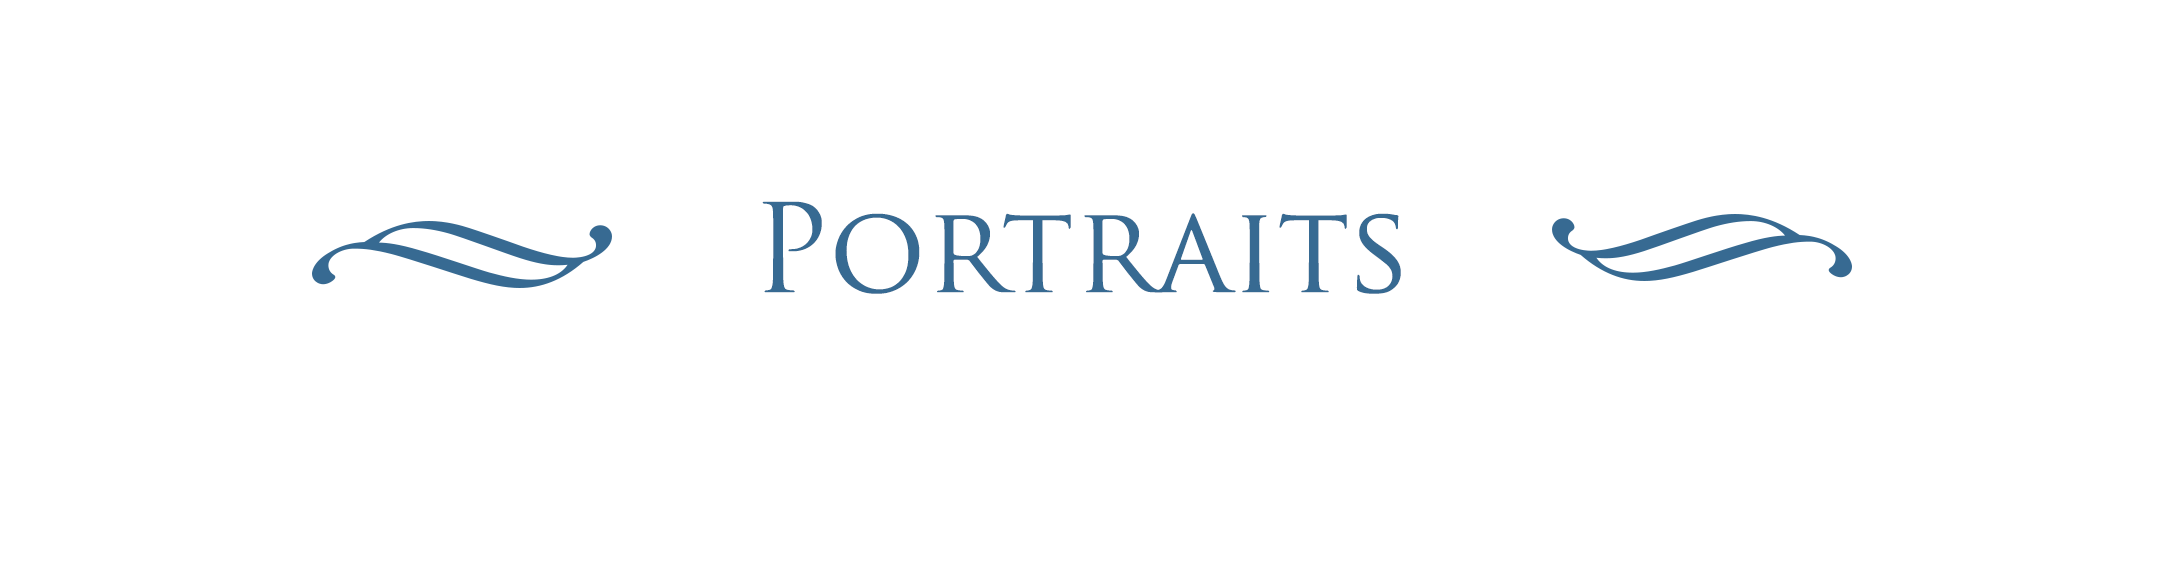 Portraits Header_blue.png